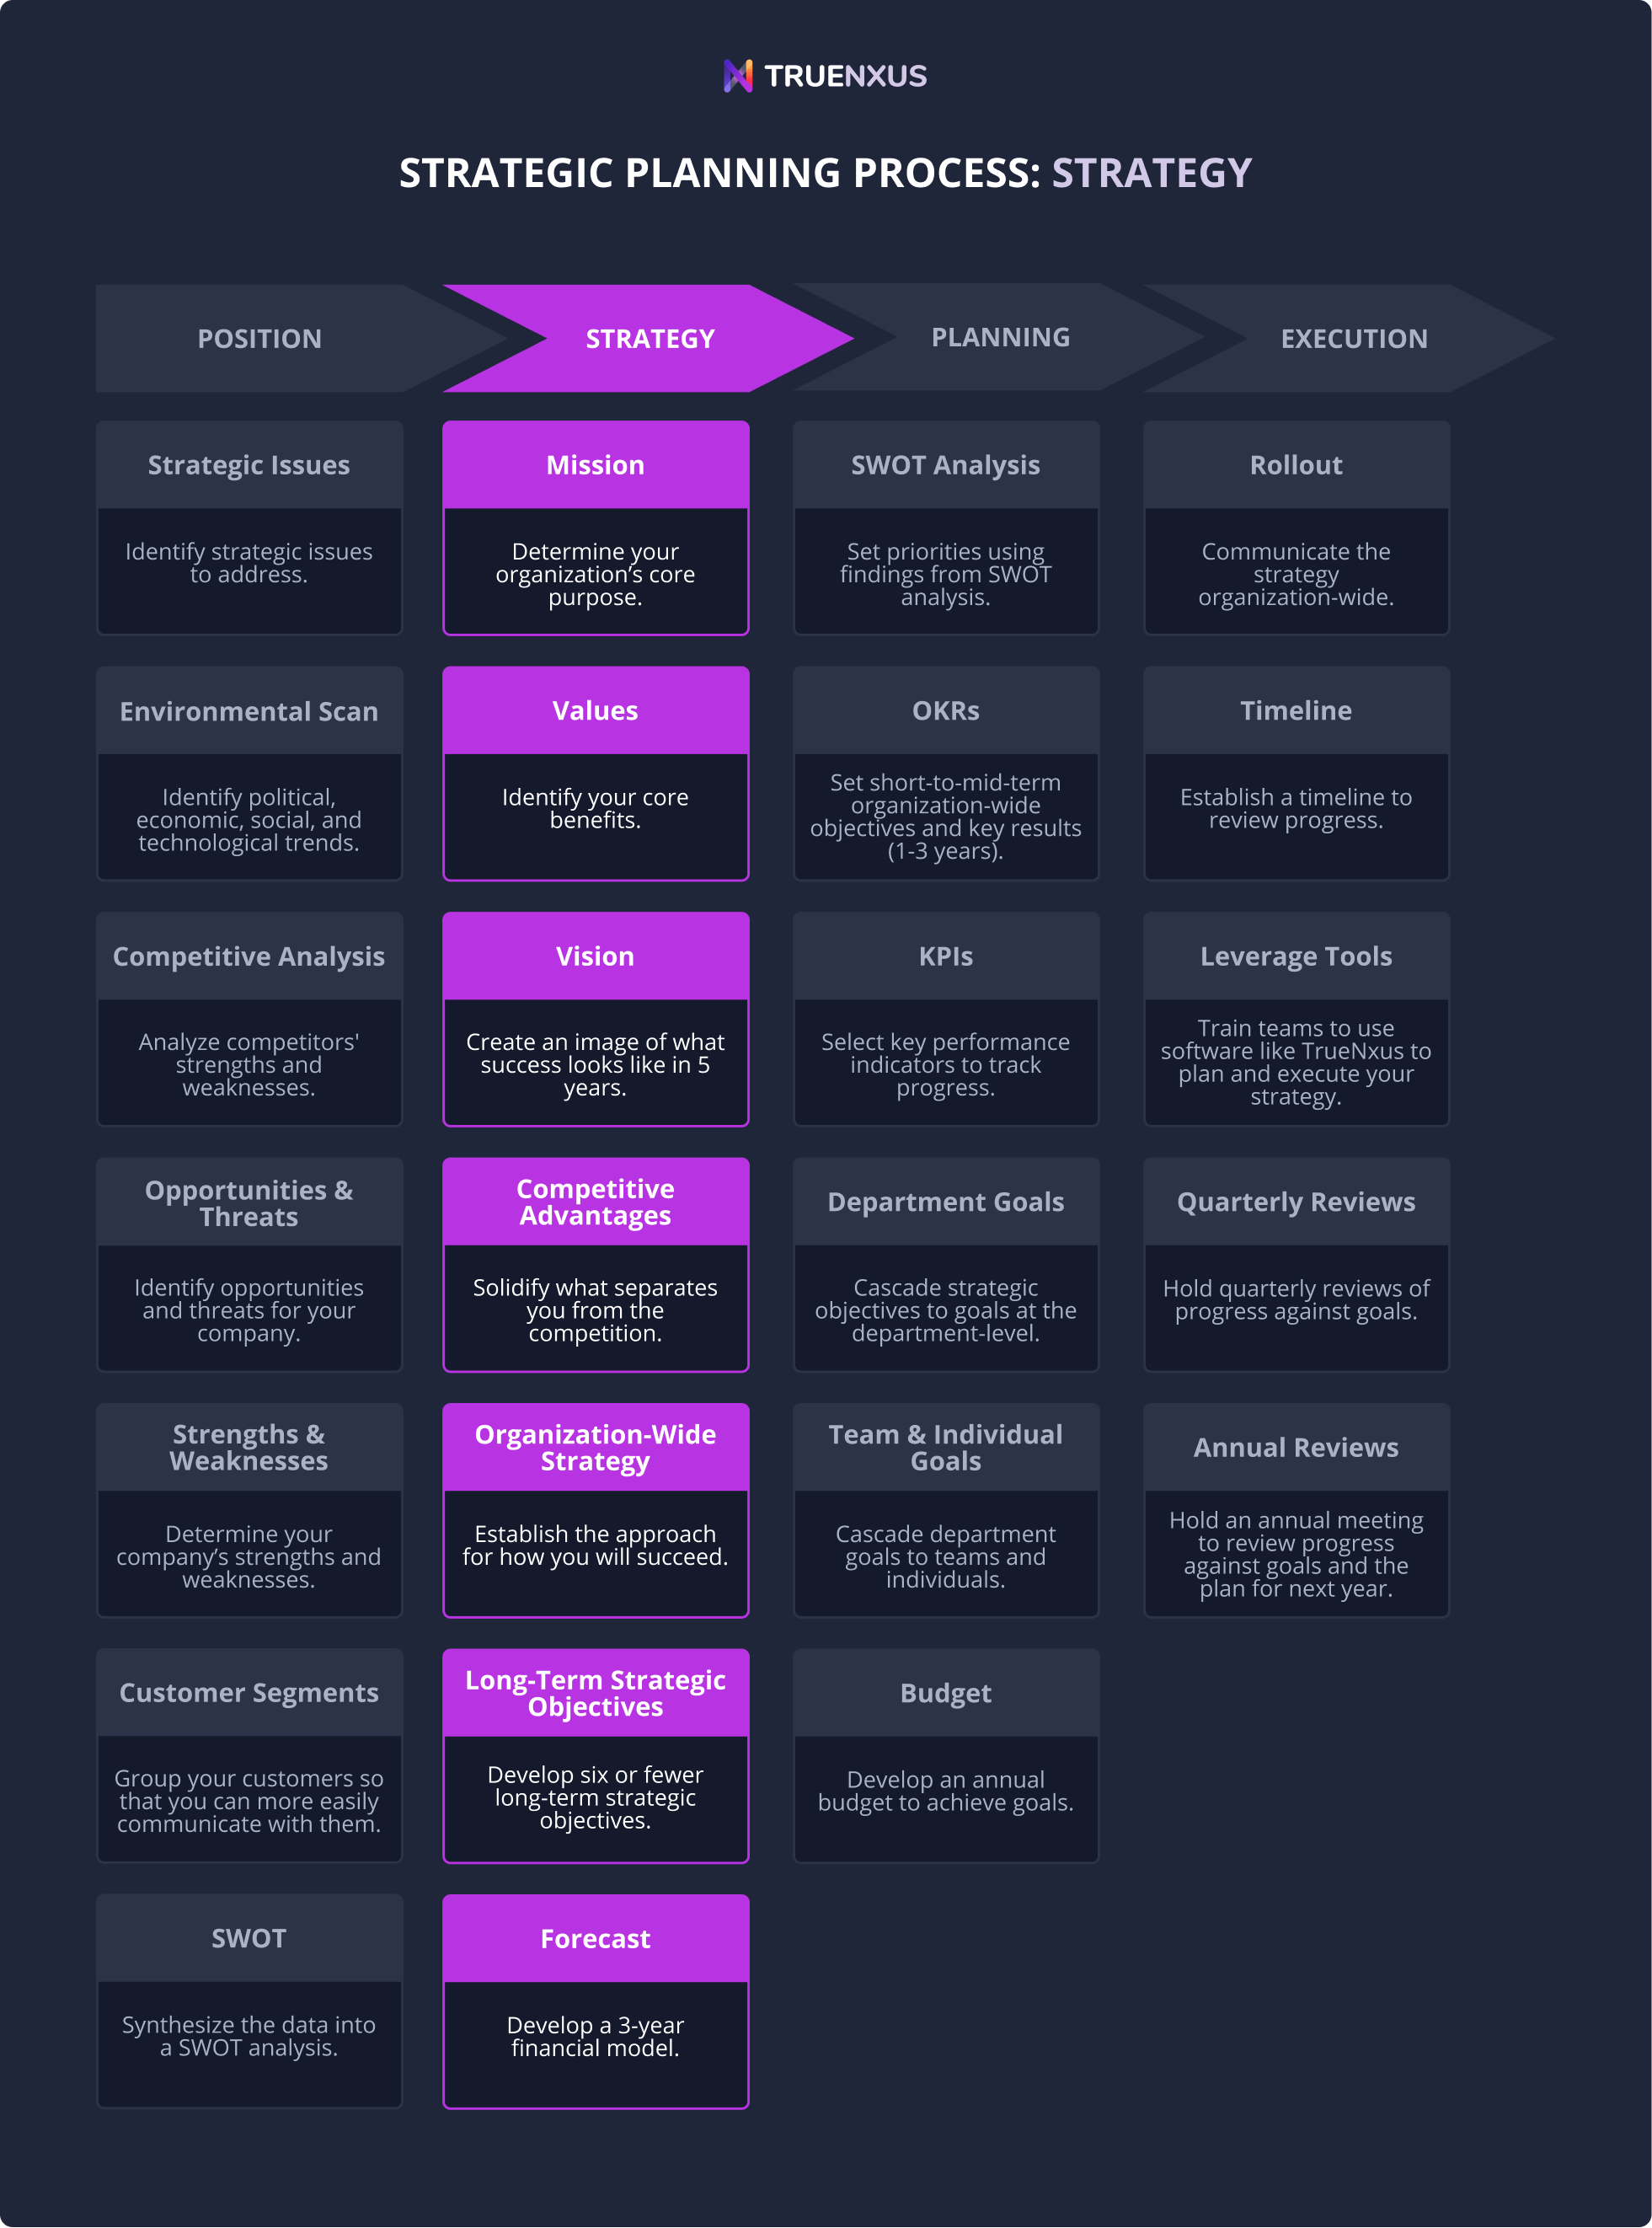 Phase 2: Developing strategy infographic